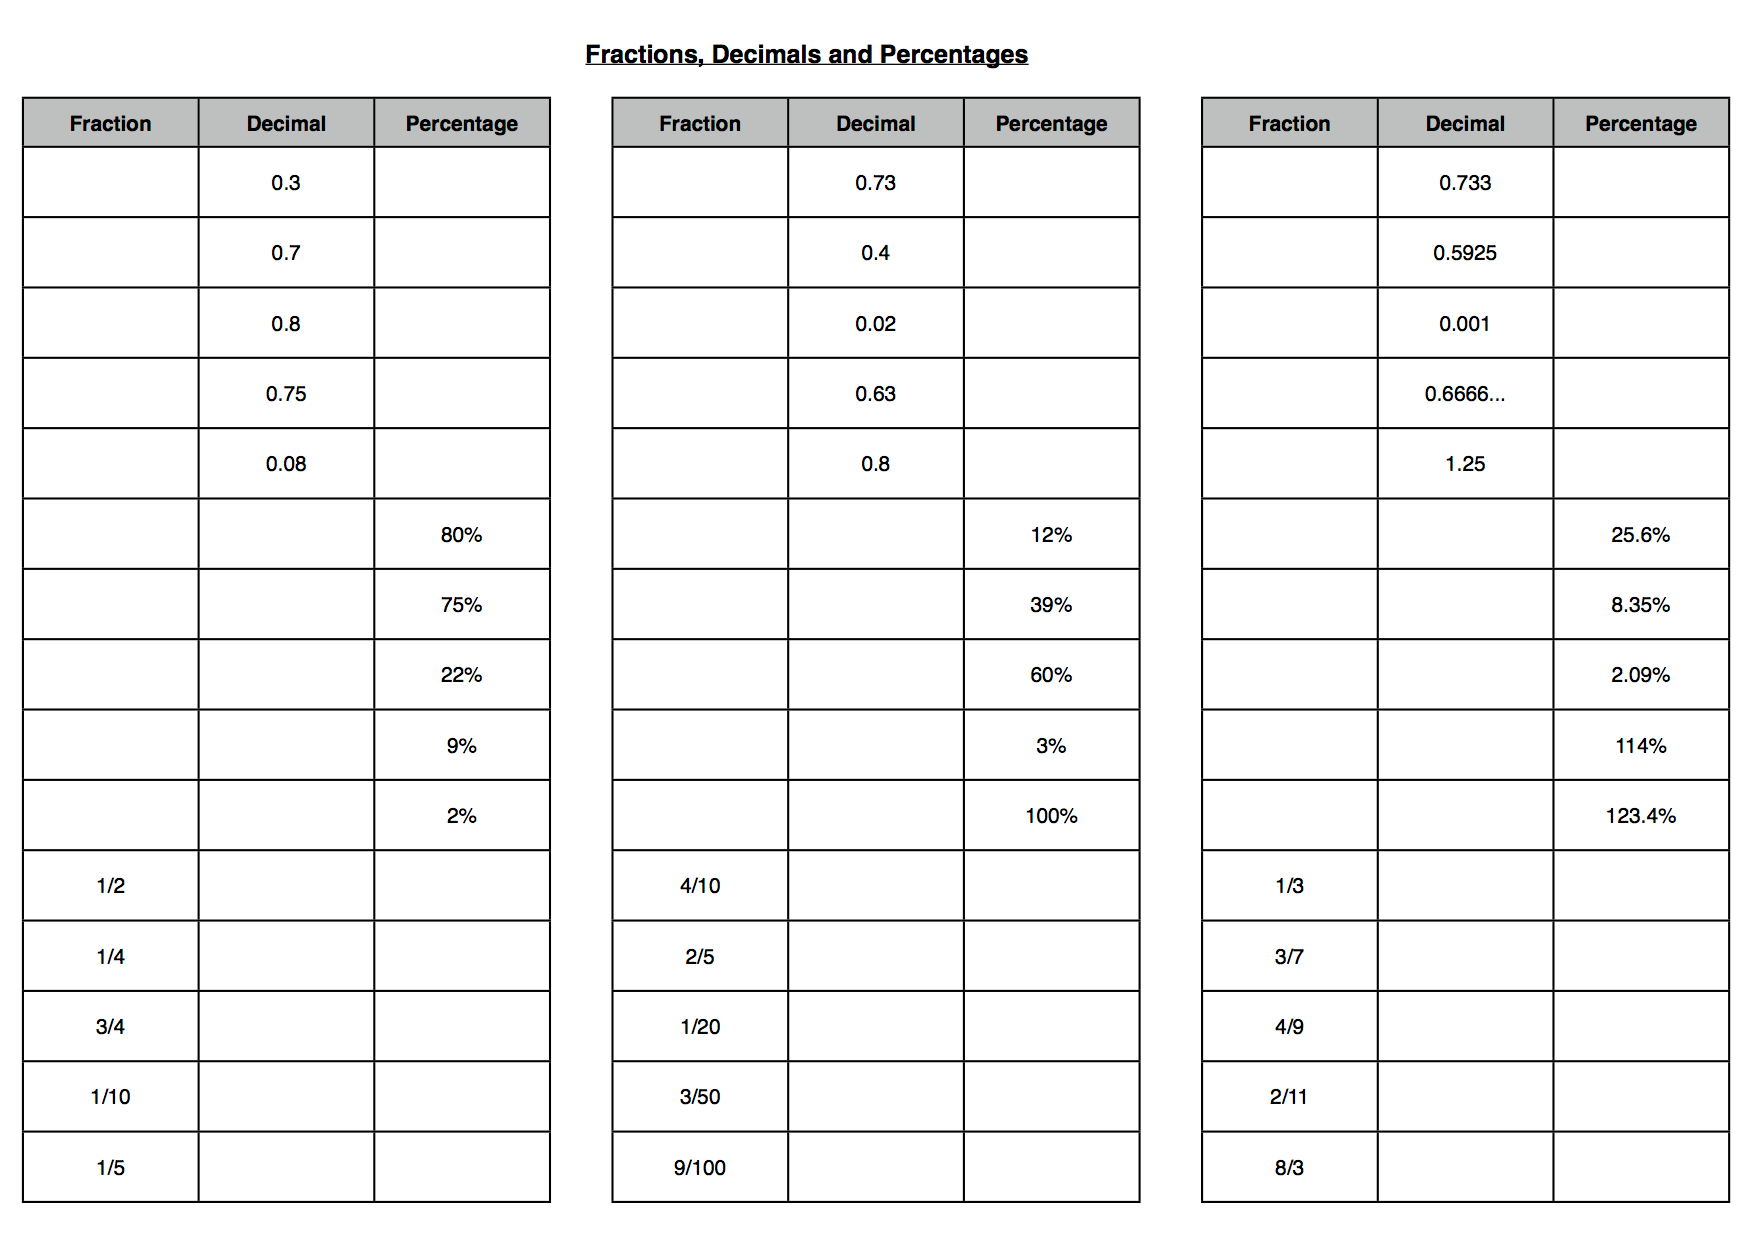 Converting Fractions To Decimals And Percents Worksheets Heygotomaps – Convert Decimal to Fraction Worksheet